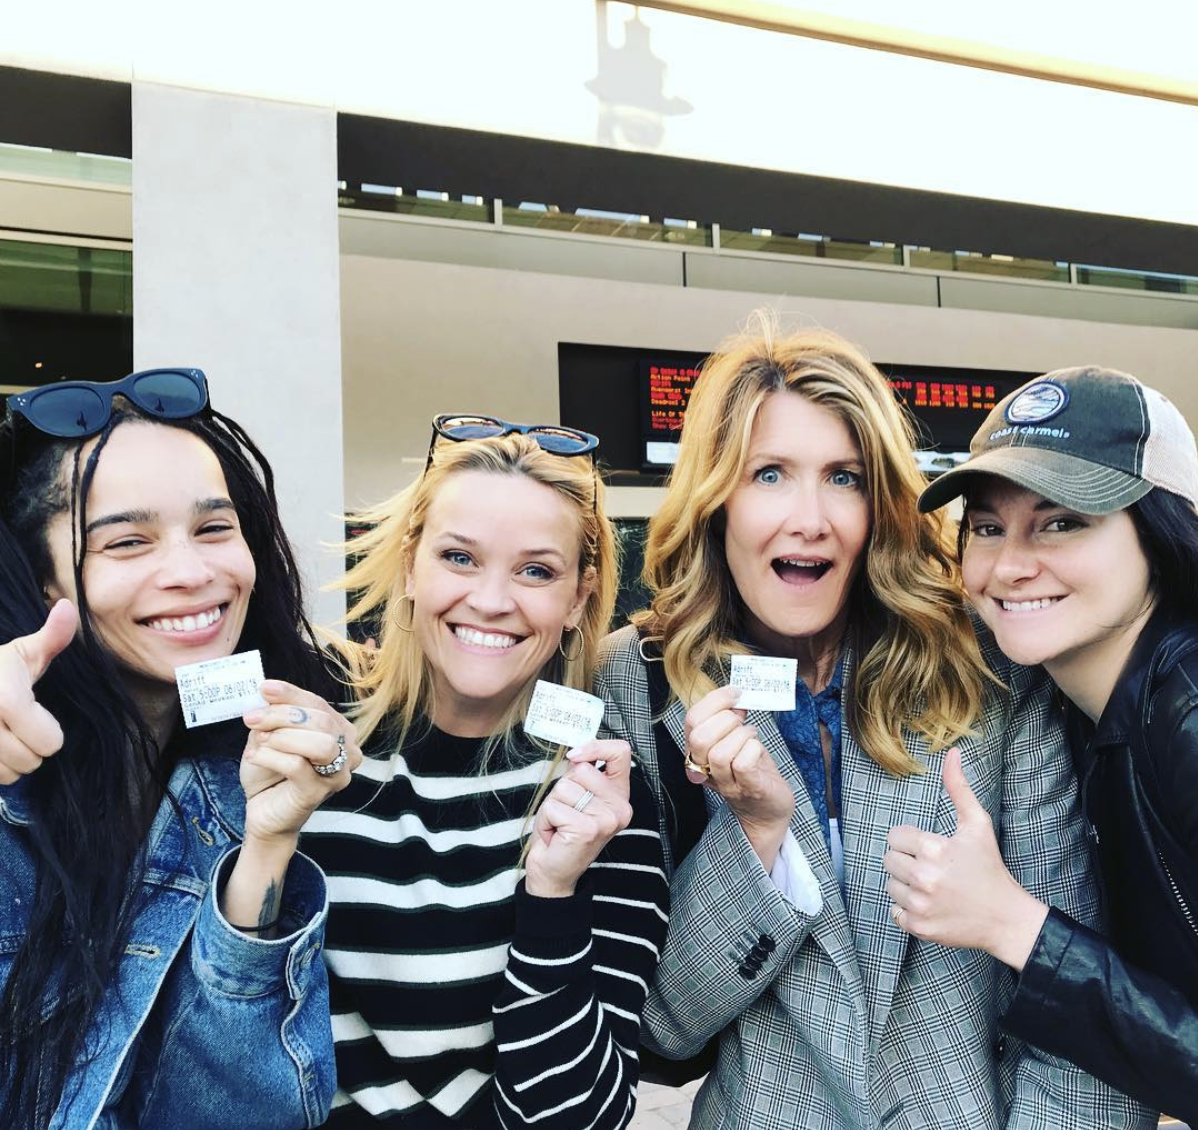 The <em>Big Little Lies</em> cast saw Shailene Woodley's new movie together, because they're forever friendship goals